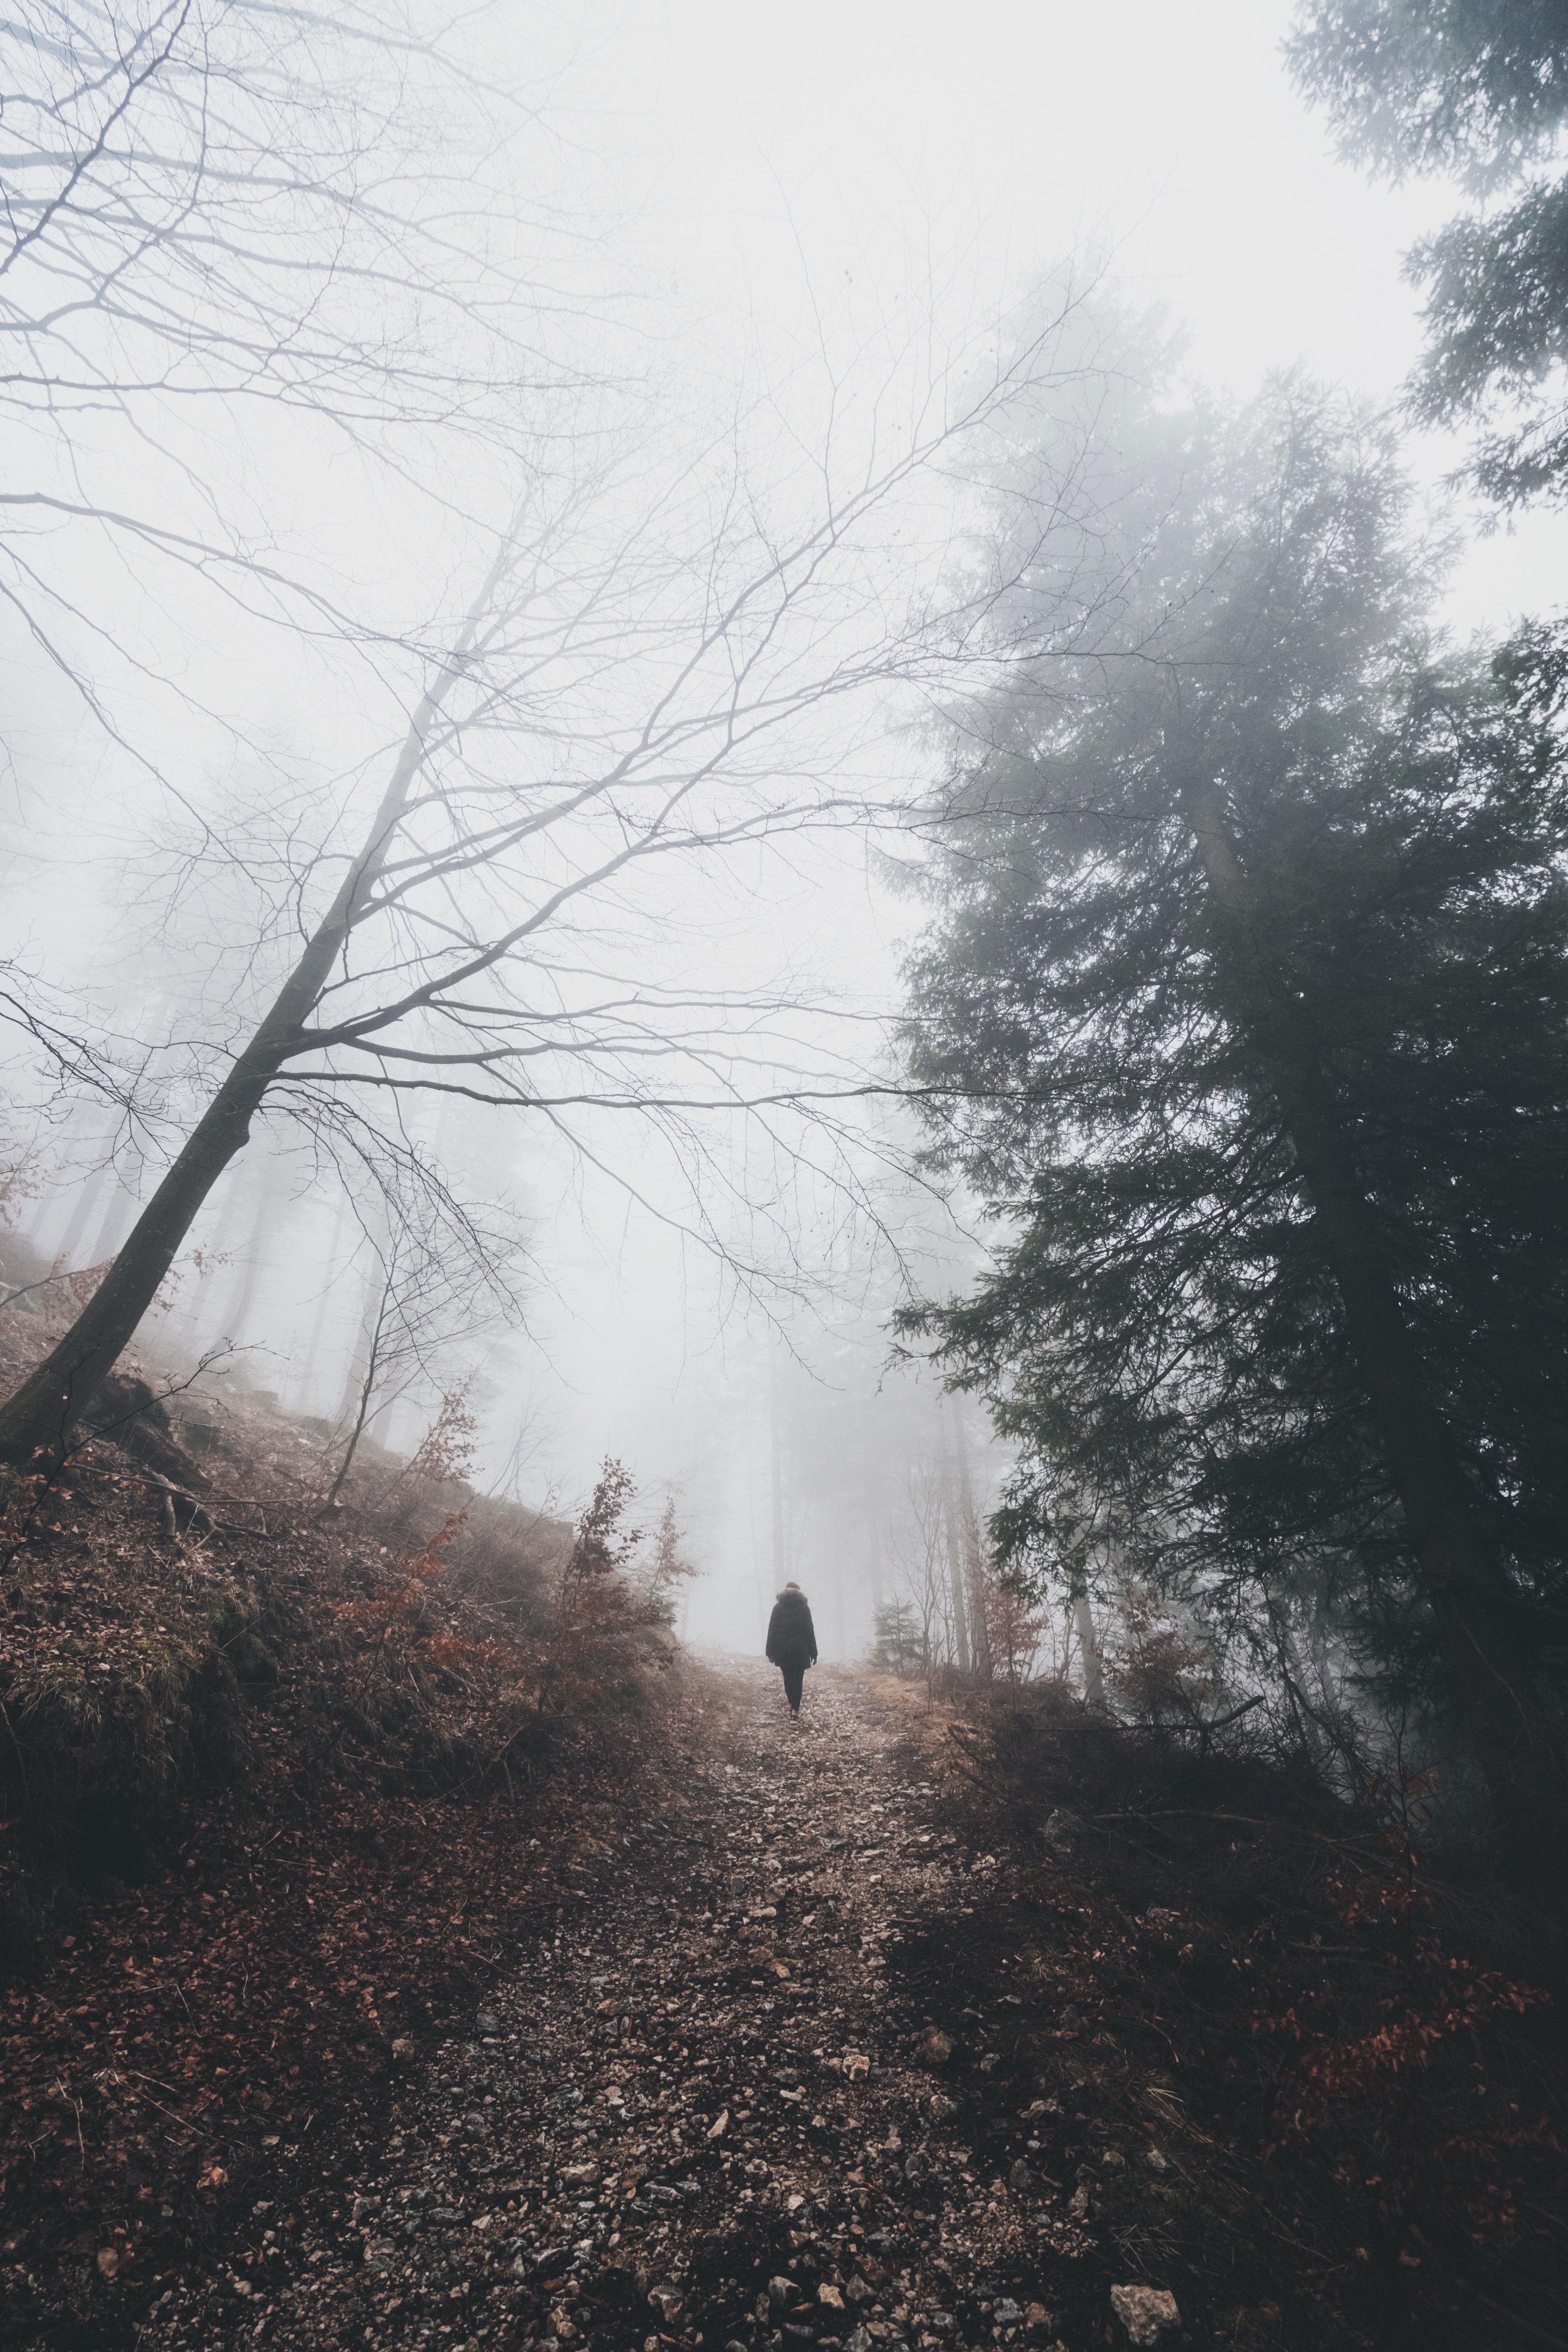 A person walking on a rocky path in a sparse forest on a foggy day